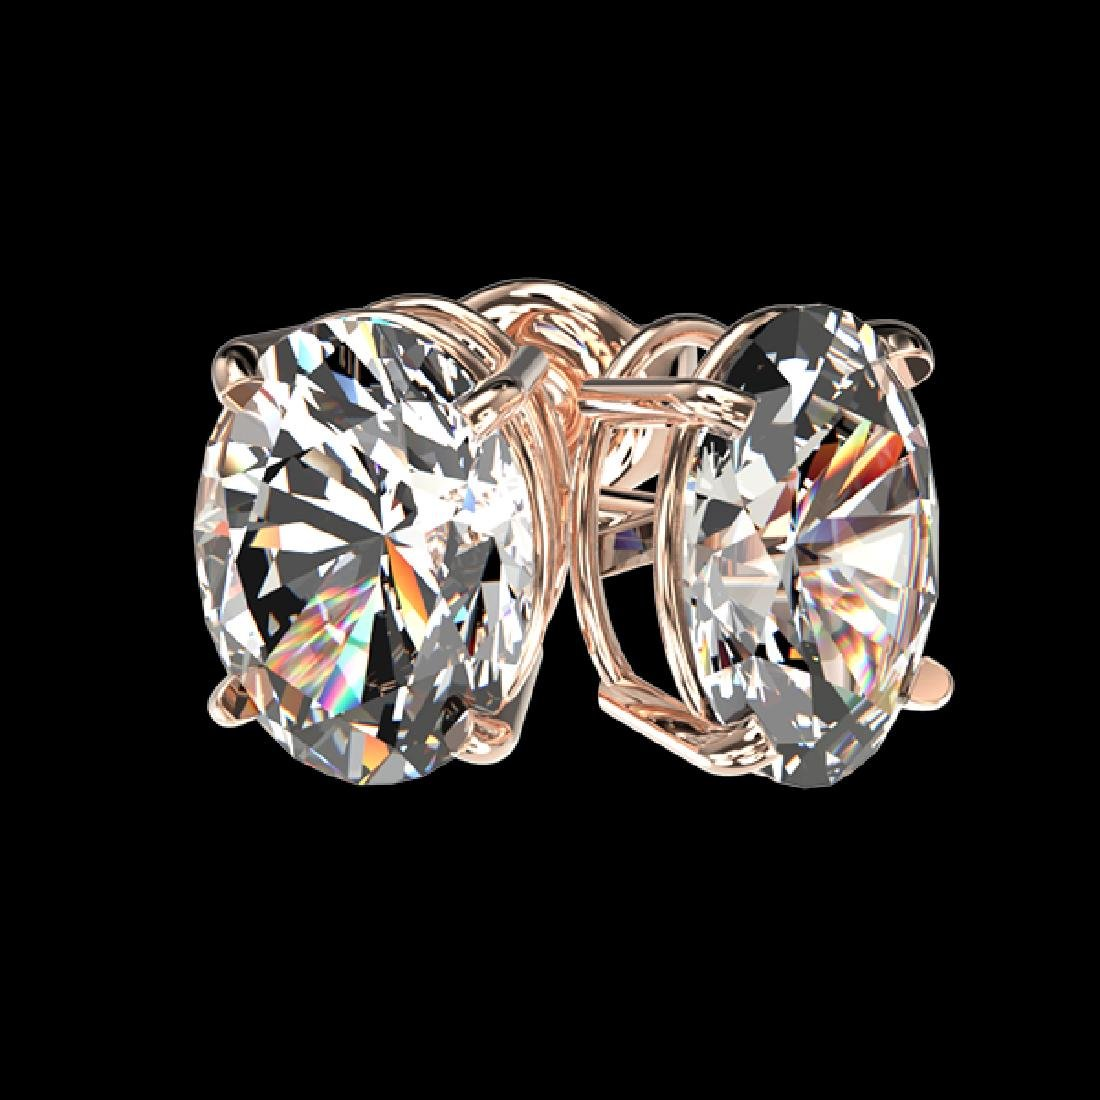 2 CTW Certified VS/SI Quality Oval Diamond Solitaire - 3